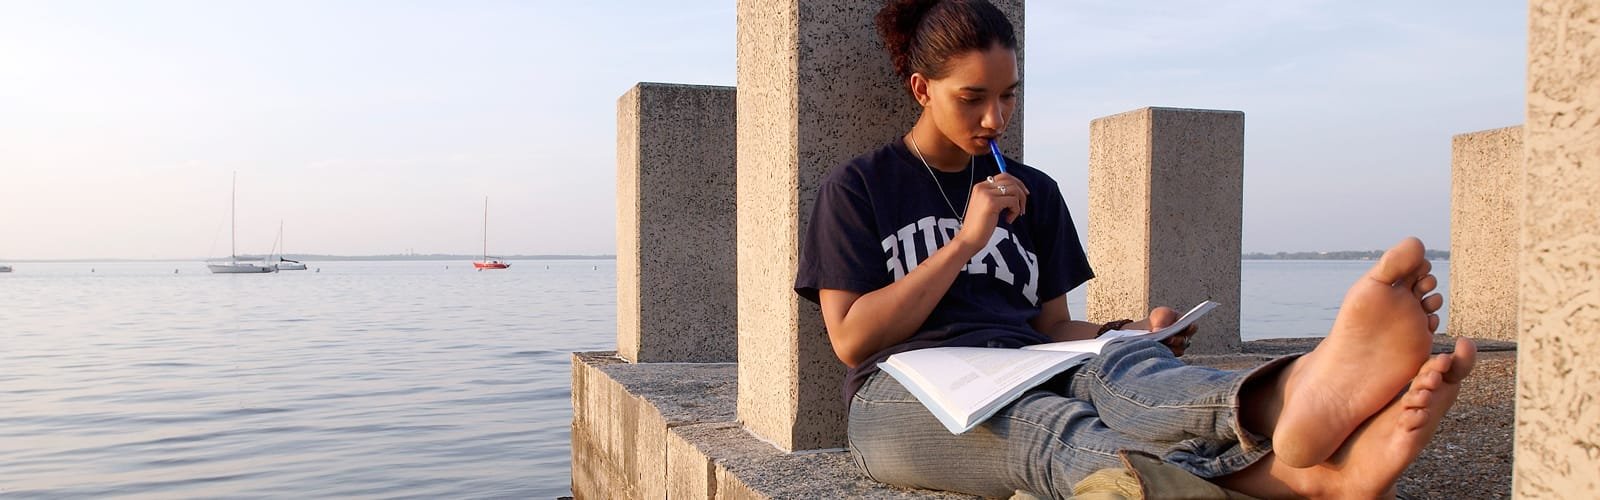 Student sitting alongside Lake Mendota